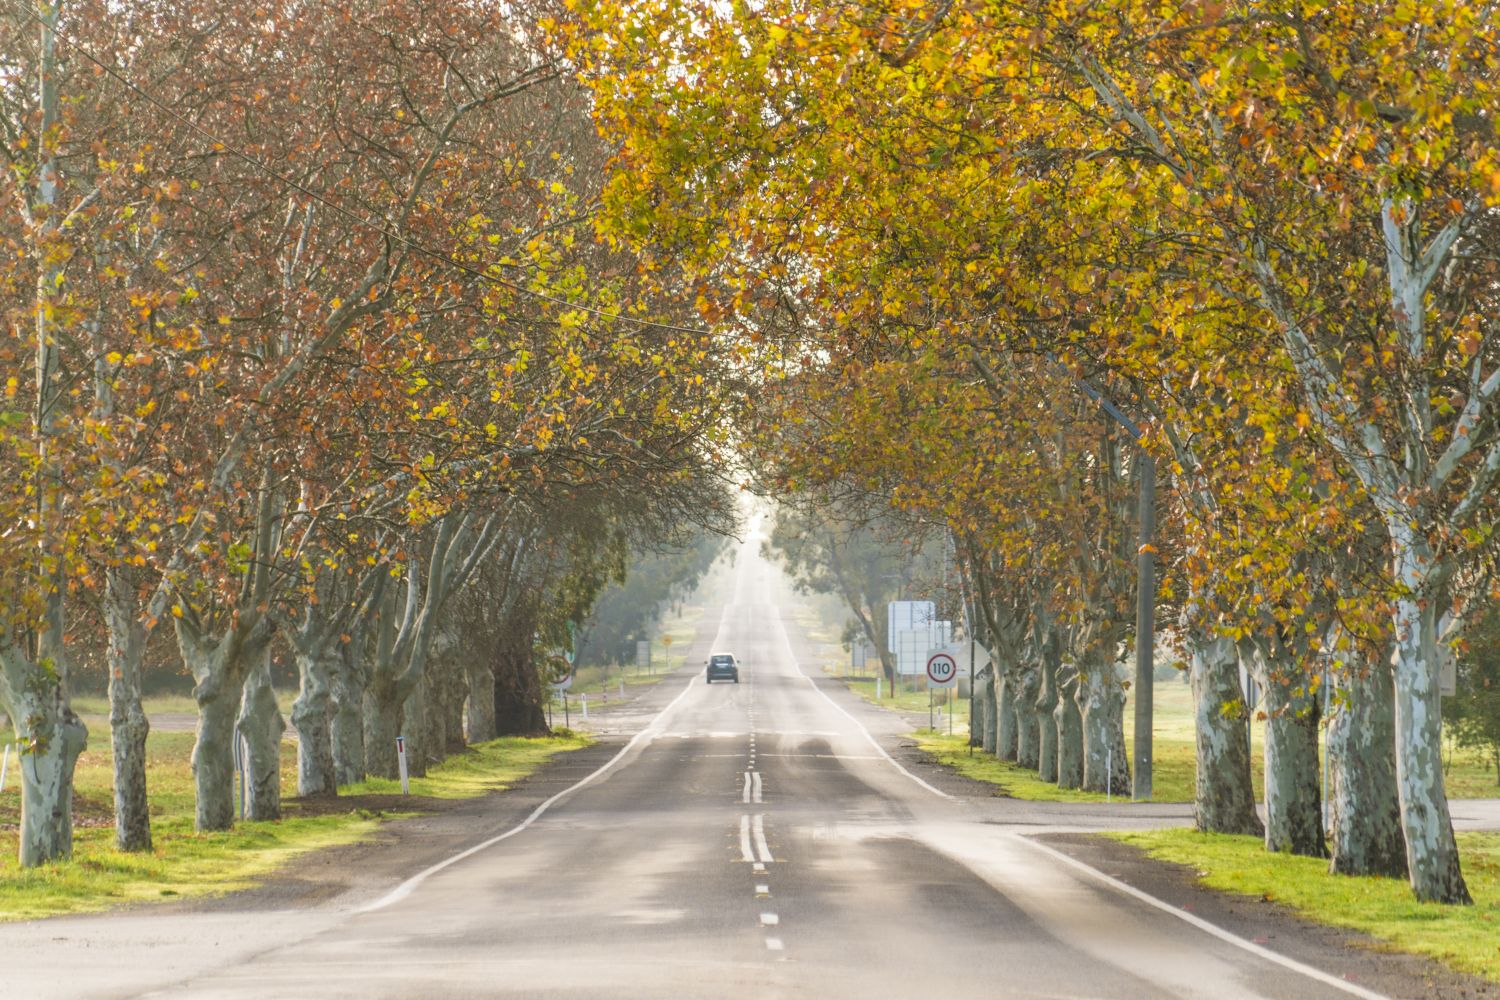 Autumn colours on display on a tree-lined road in Narrandera